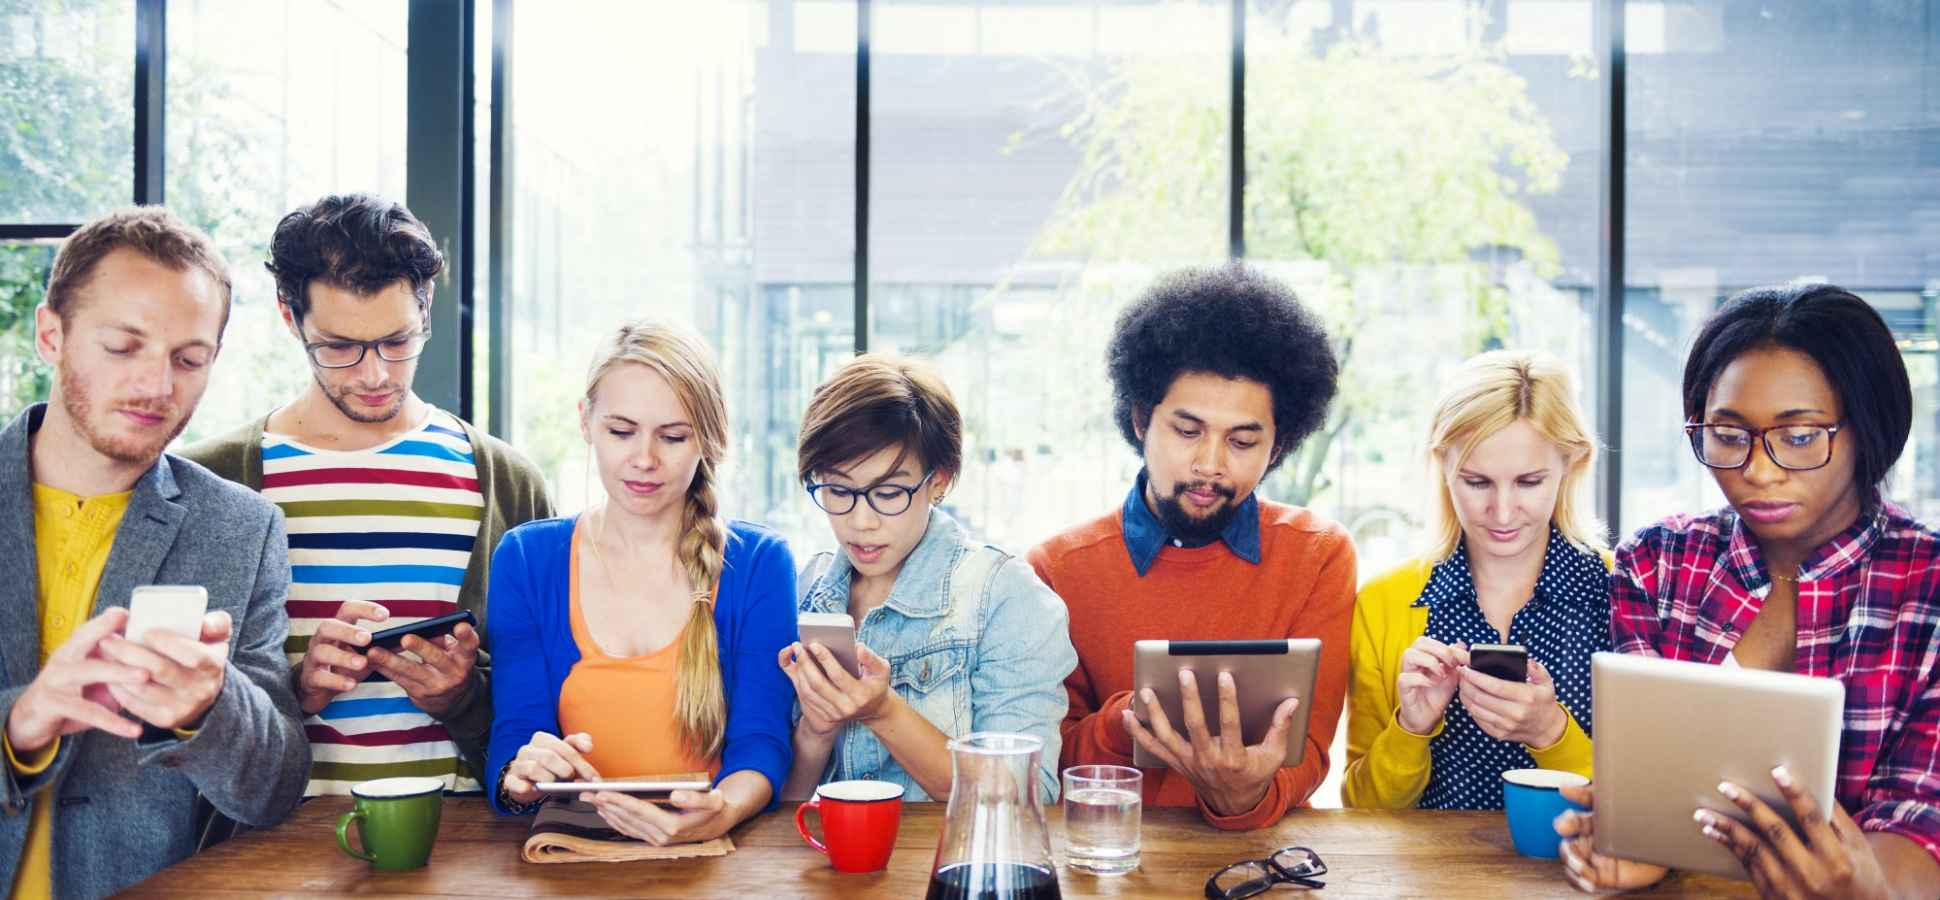 6 Ways to Elevate Your Brand on Social Media